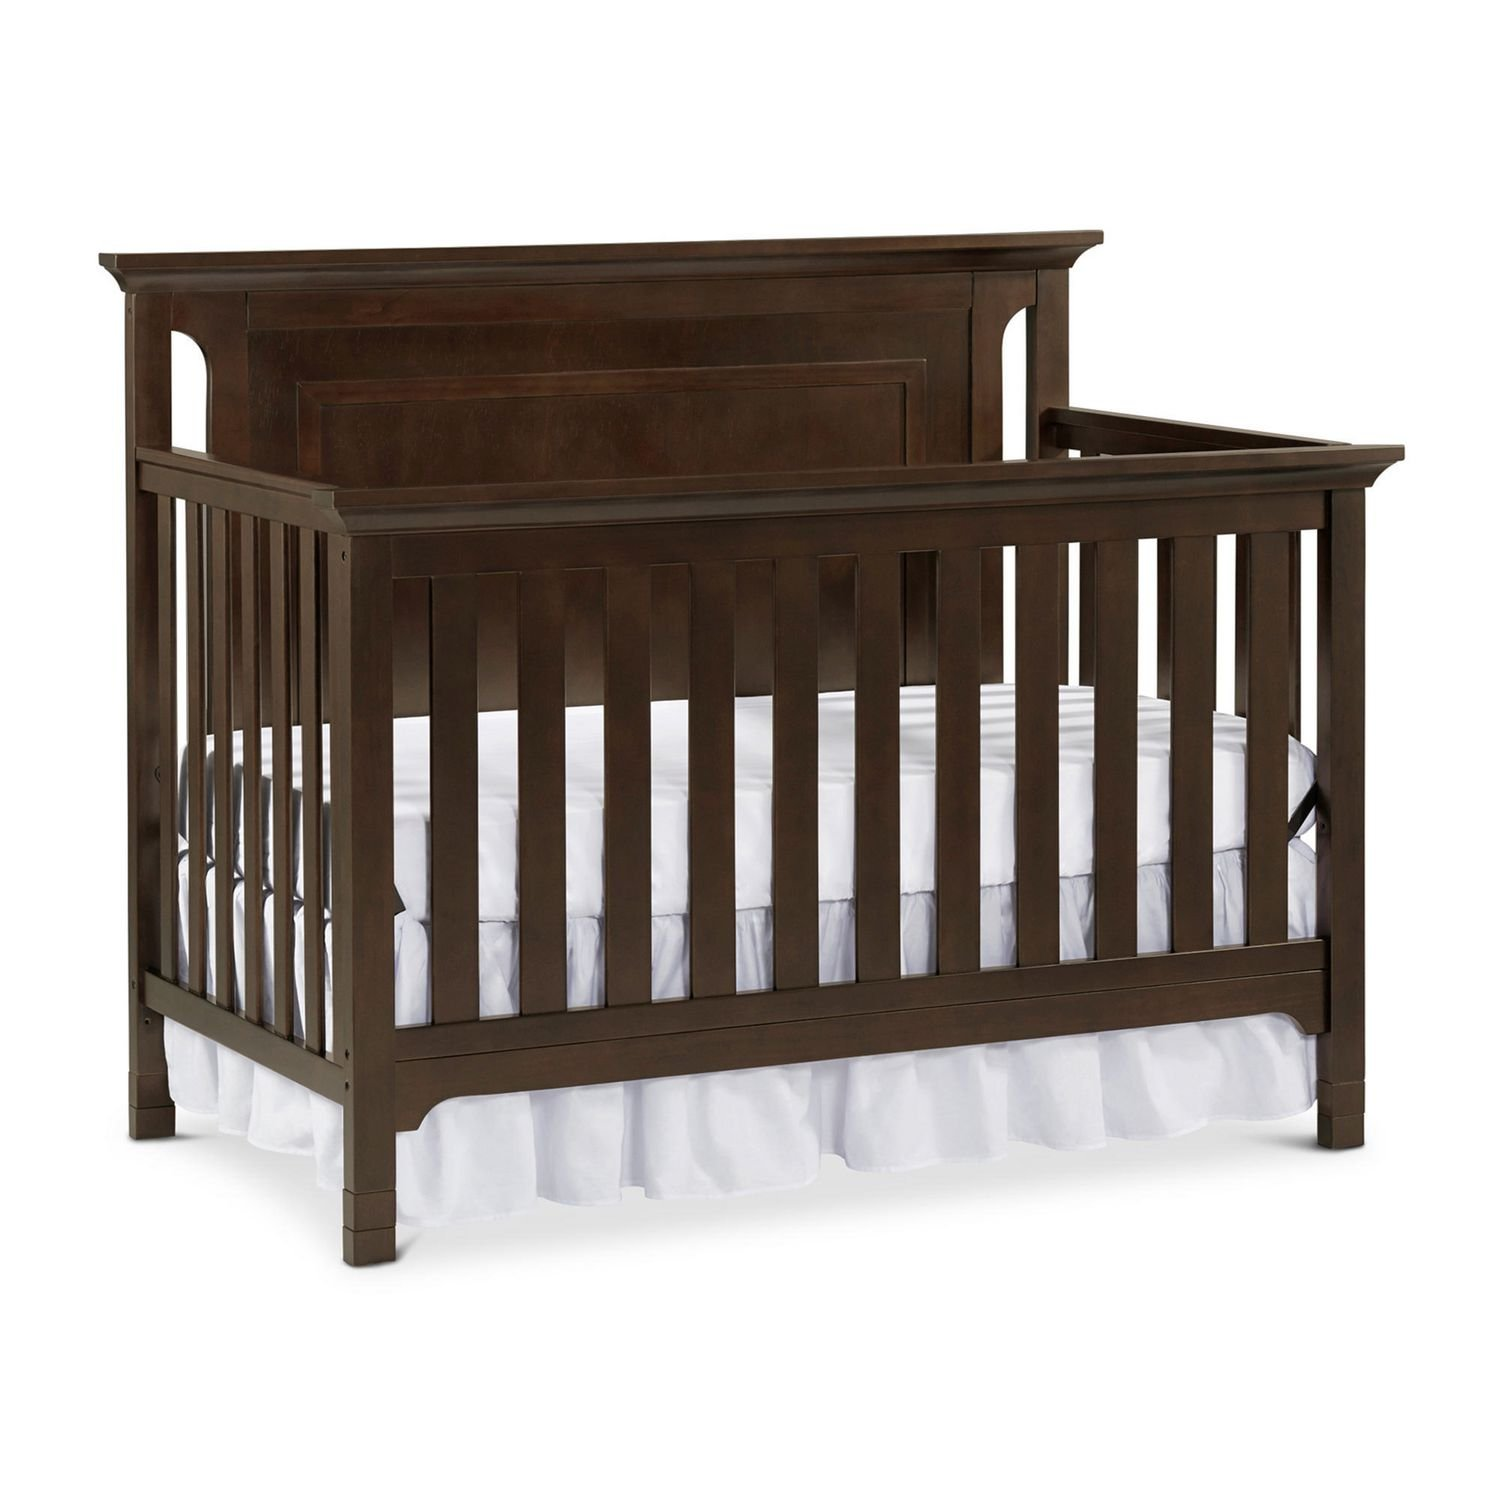 Ti Amo Carino Convertible Crib - Dark Roast (CURBISDE PICK-UP ONLY)